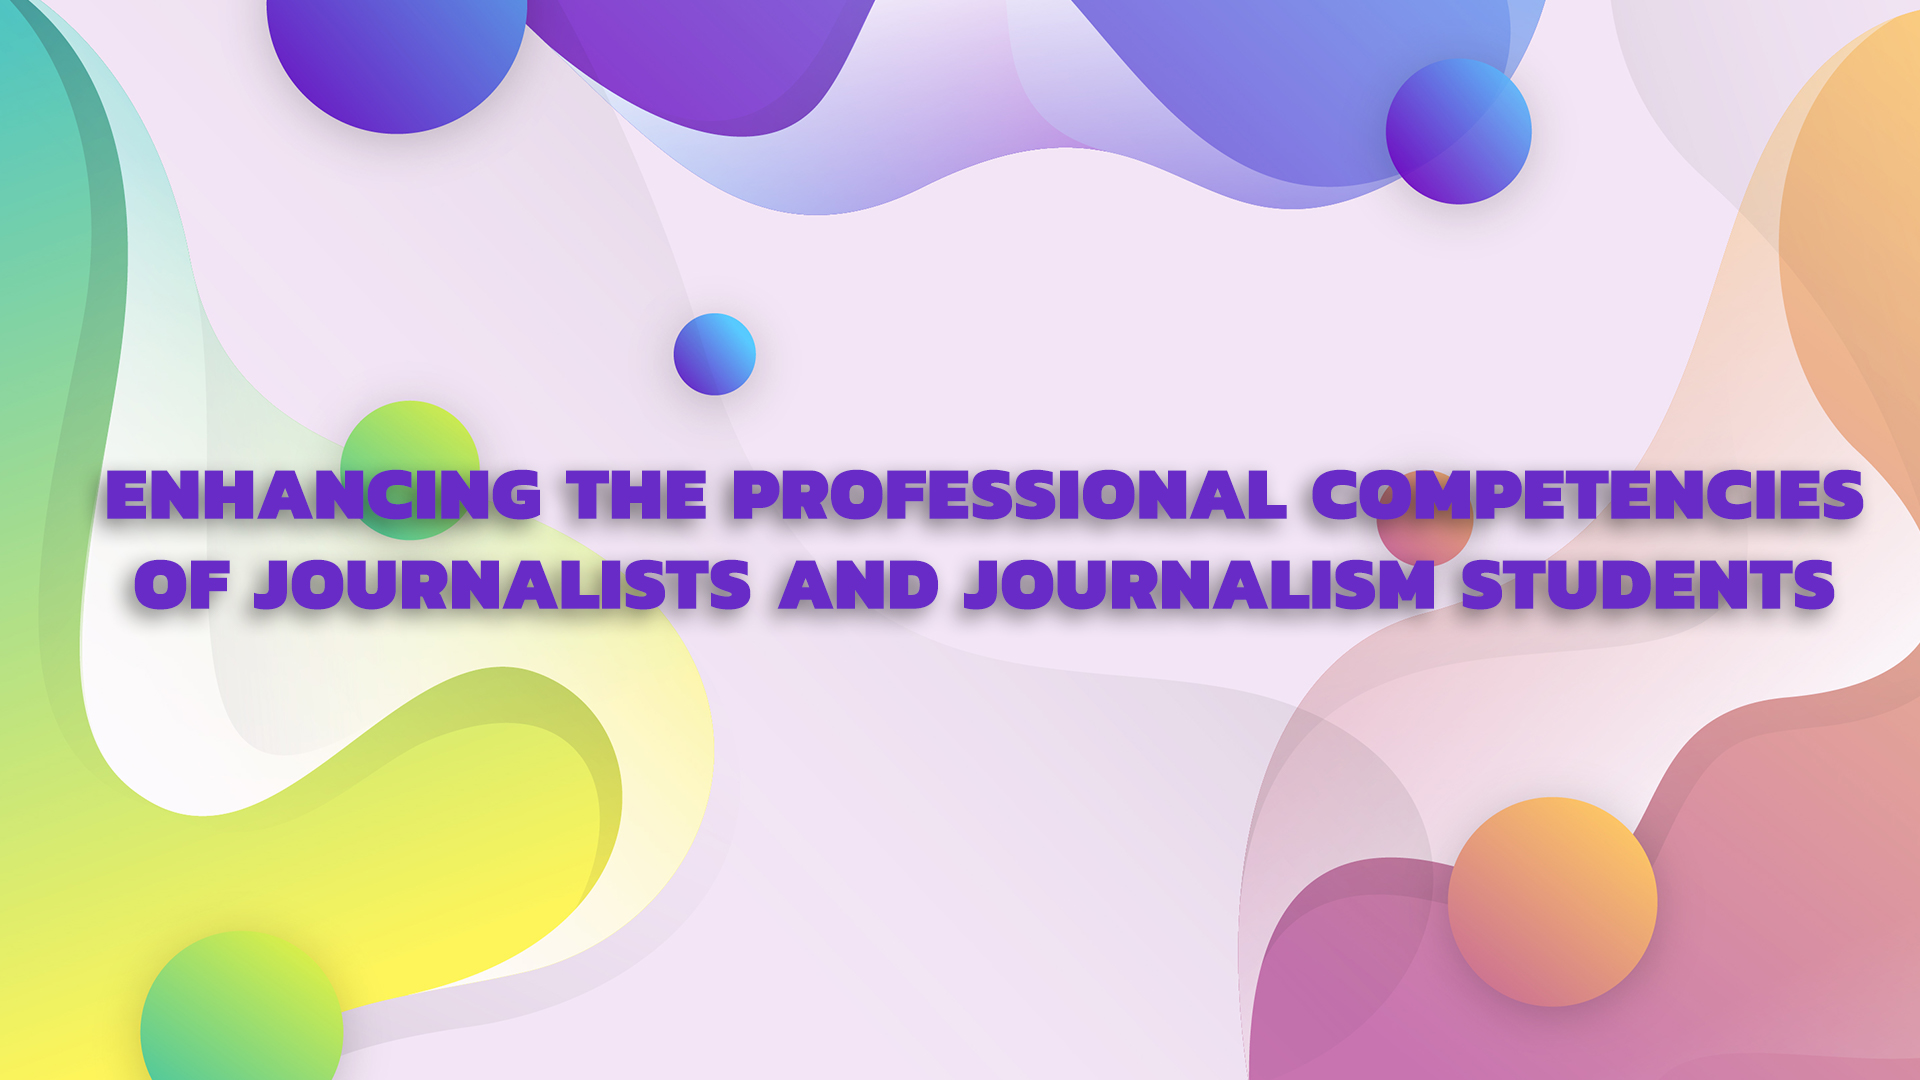 ENHANCING THE PROFESSIONAL COMPETENCIES OF JOURNALISTS AND JOURNALISM STUDENTS (2019)